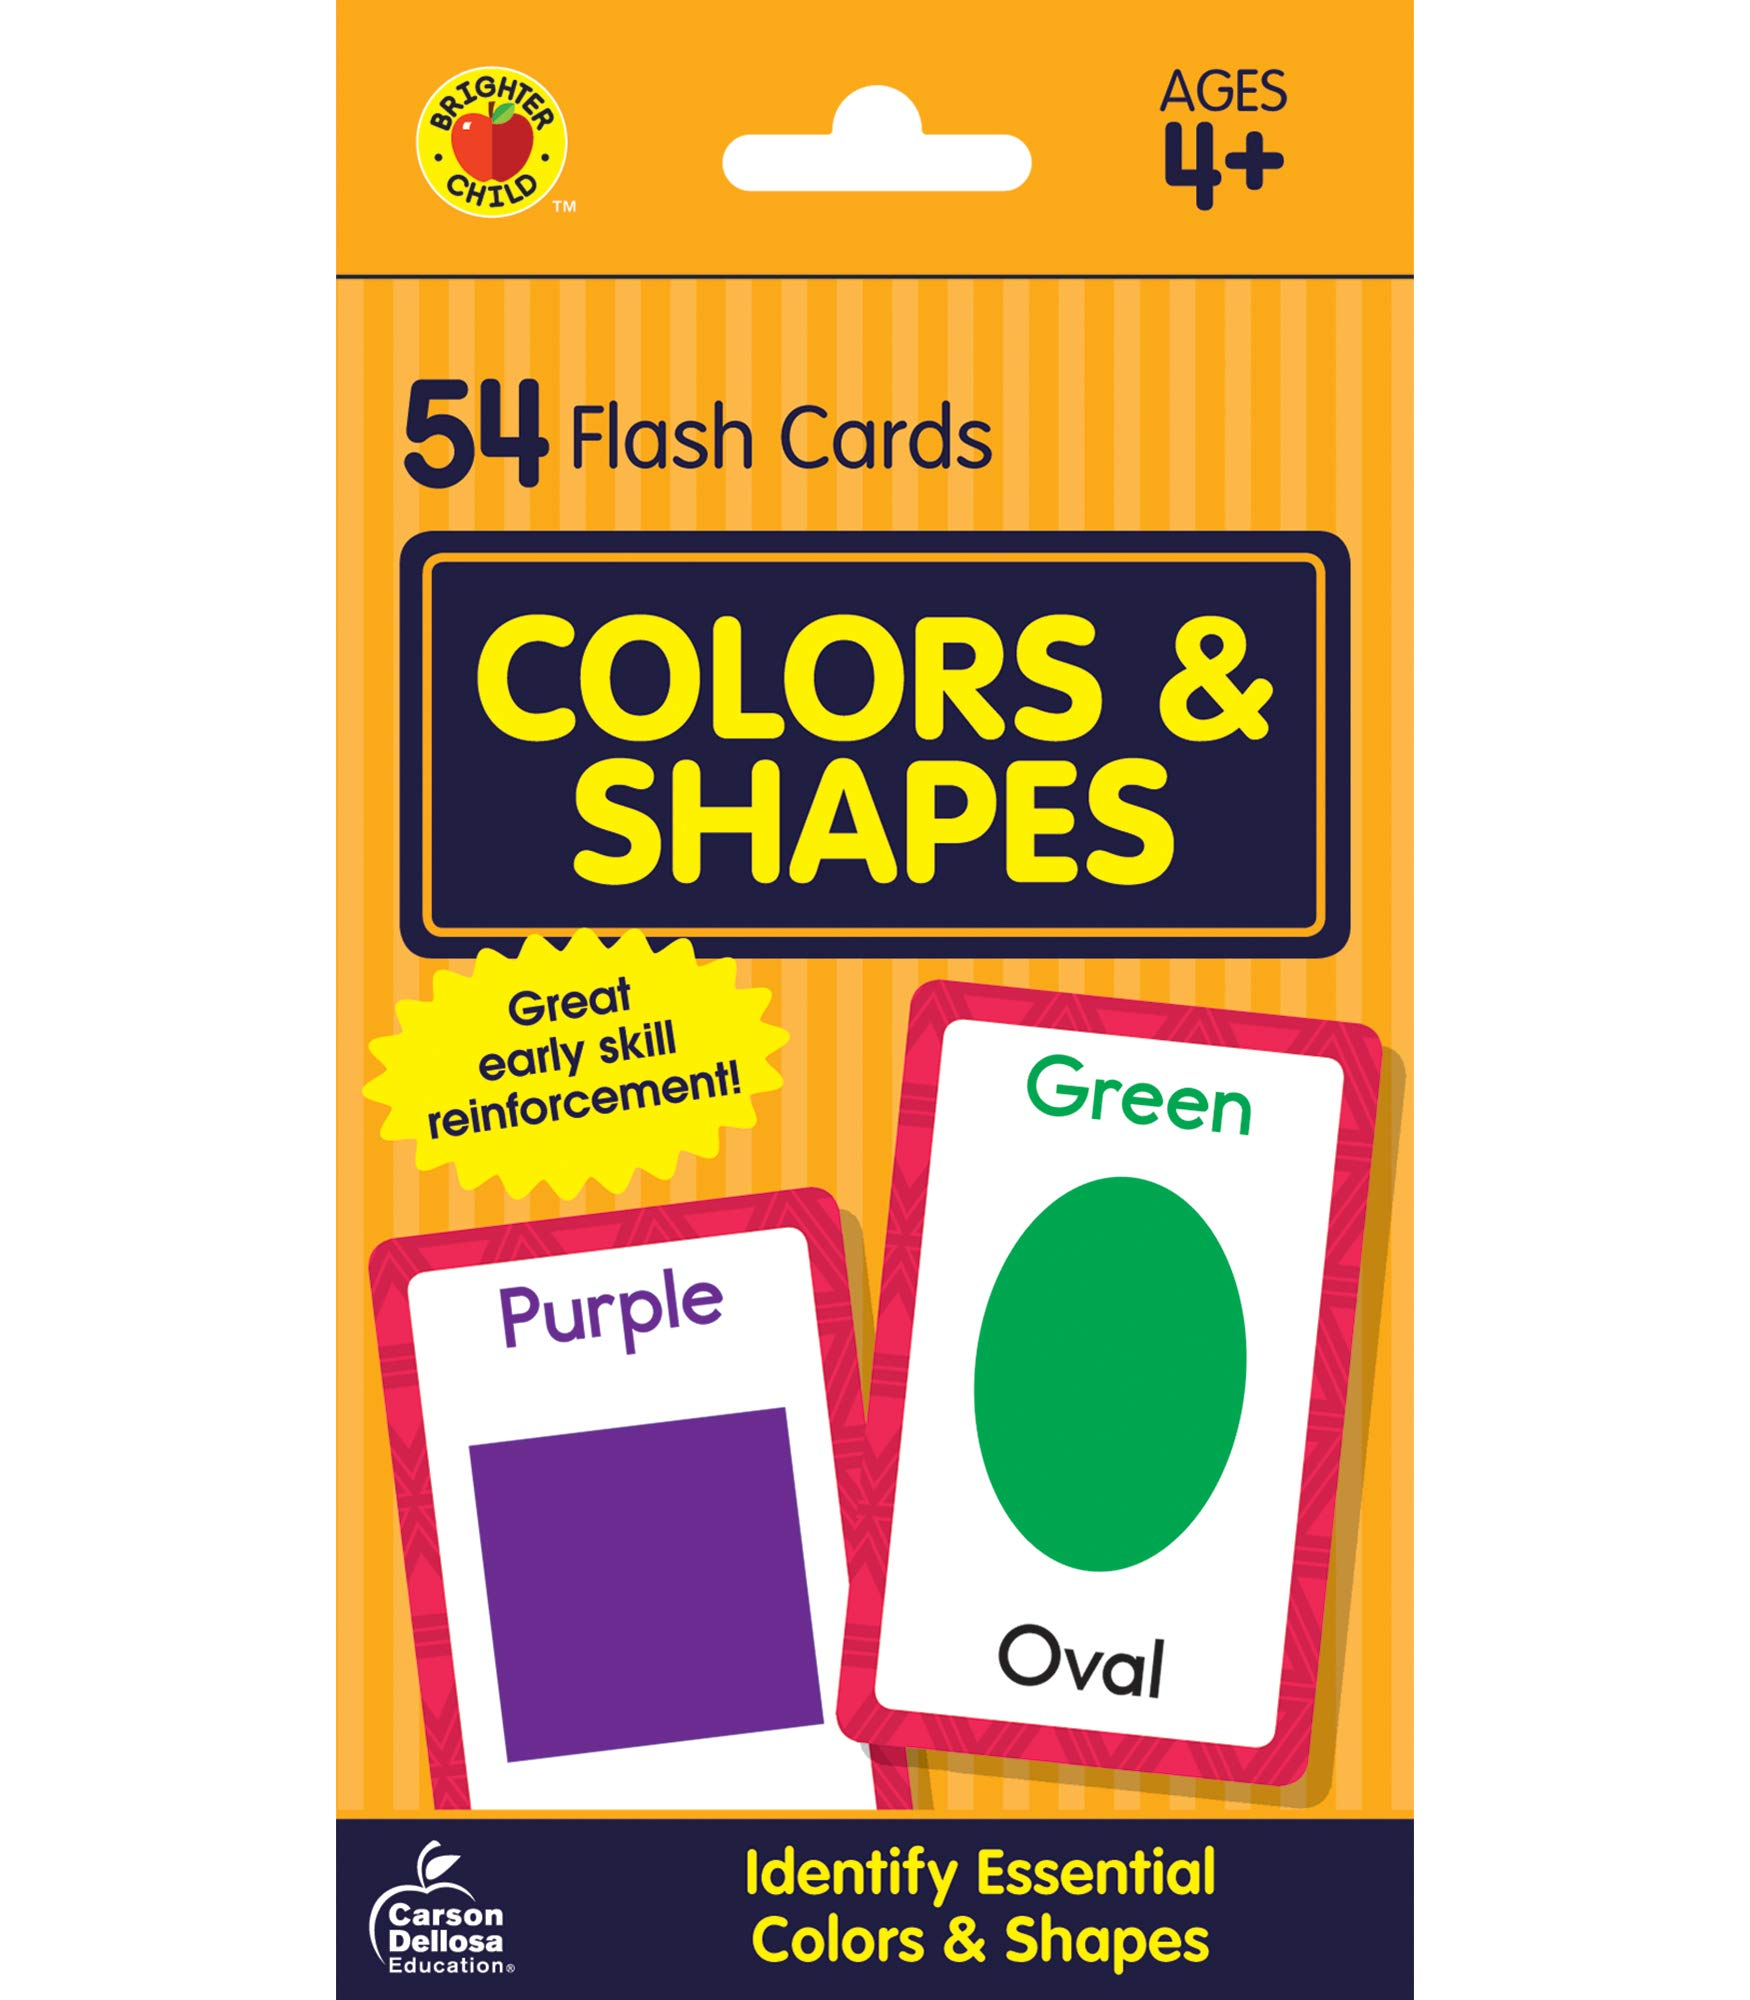 Carson Dellosa Colors and Shapes Flash Cards—Double-Sided, Essential Shapes, Basic Colors, Names With Illustrations, Early Math and Reading Comprehension Practice Set (54 pc)